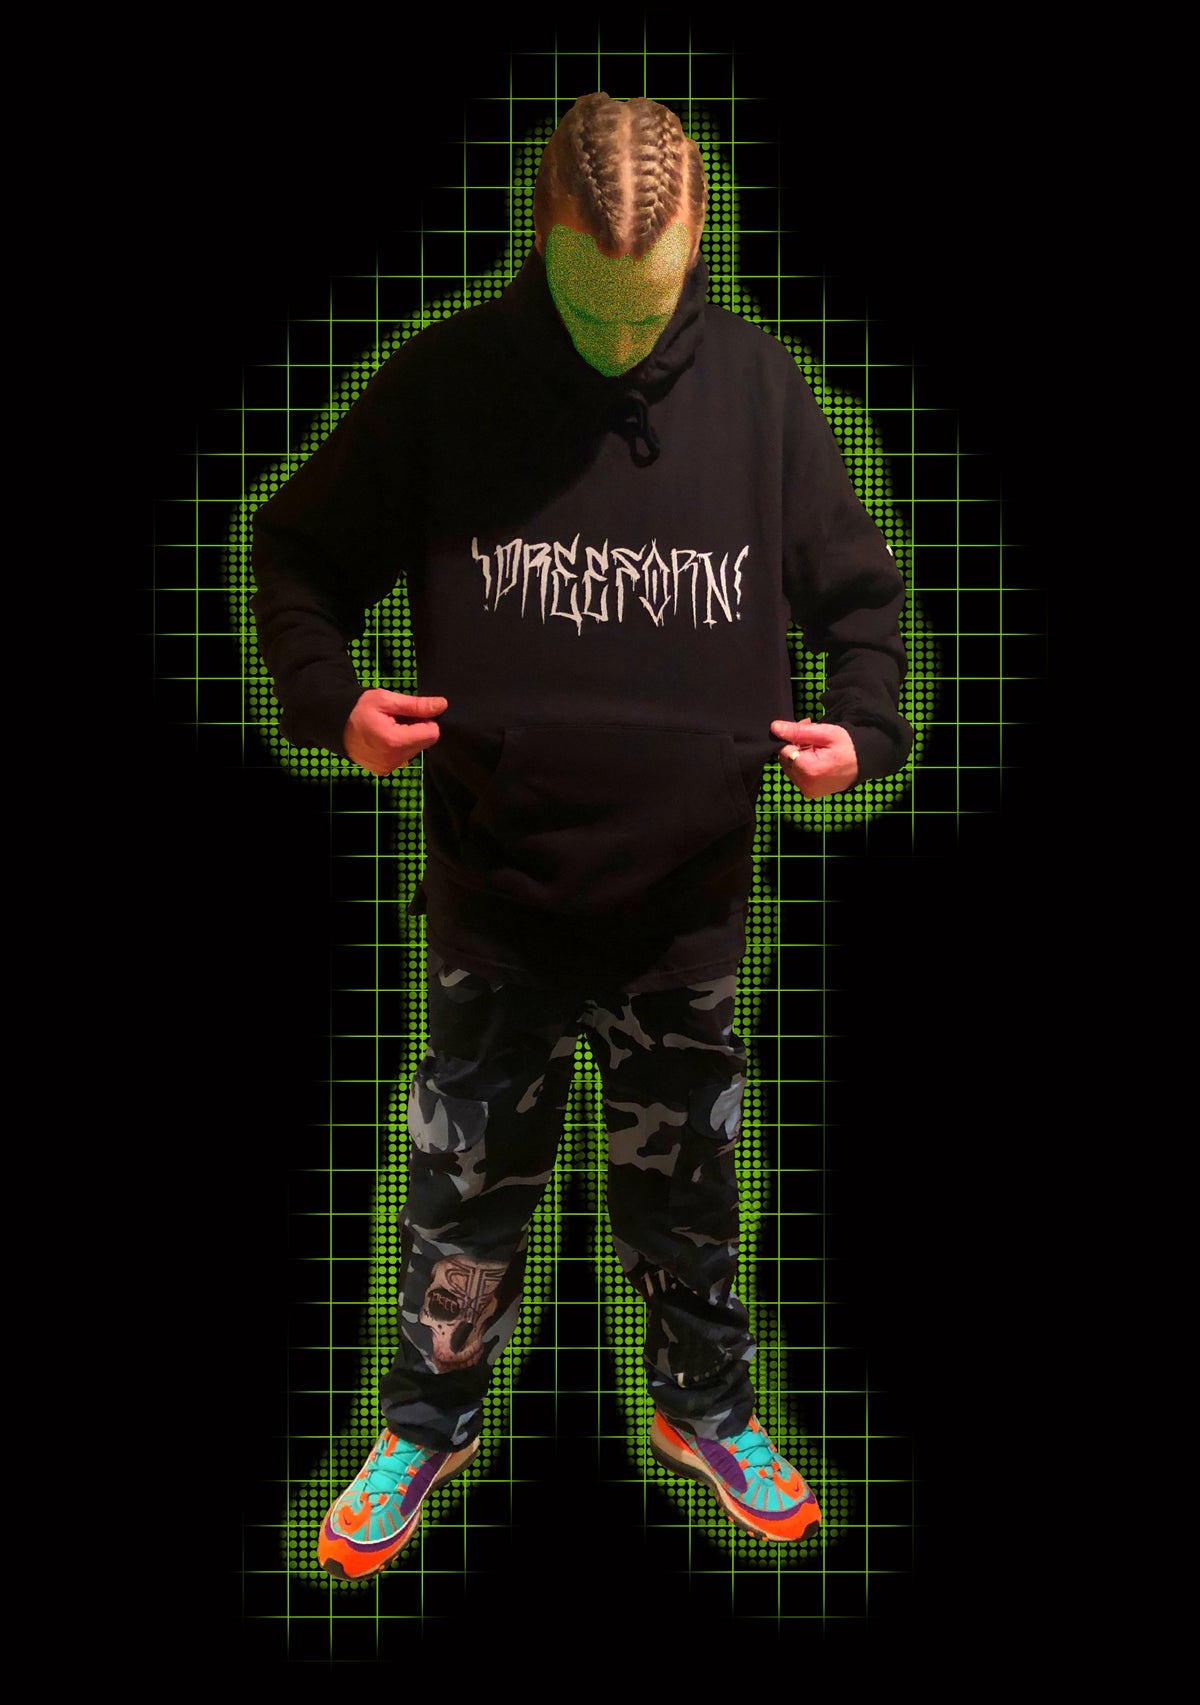 Image of PREE FORN front hand style, sleeve print, and back image hoodie